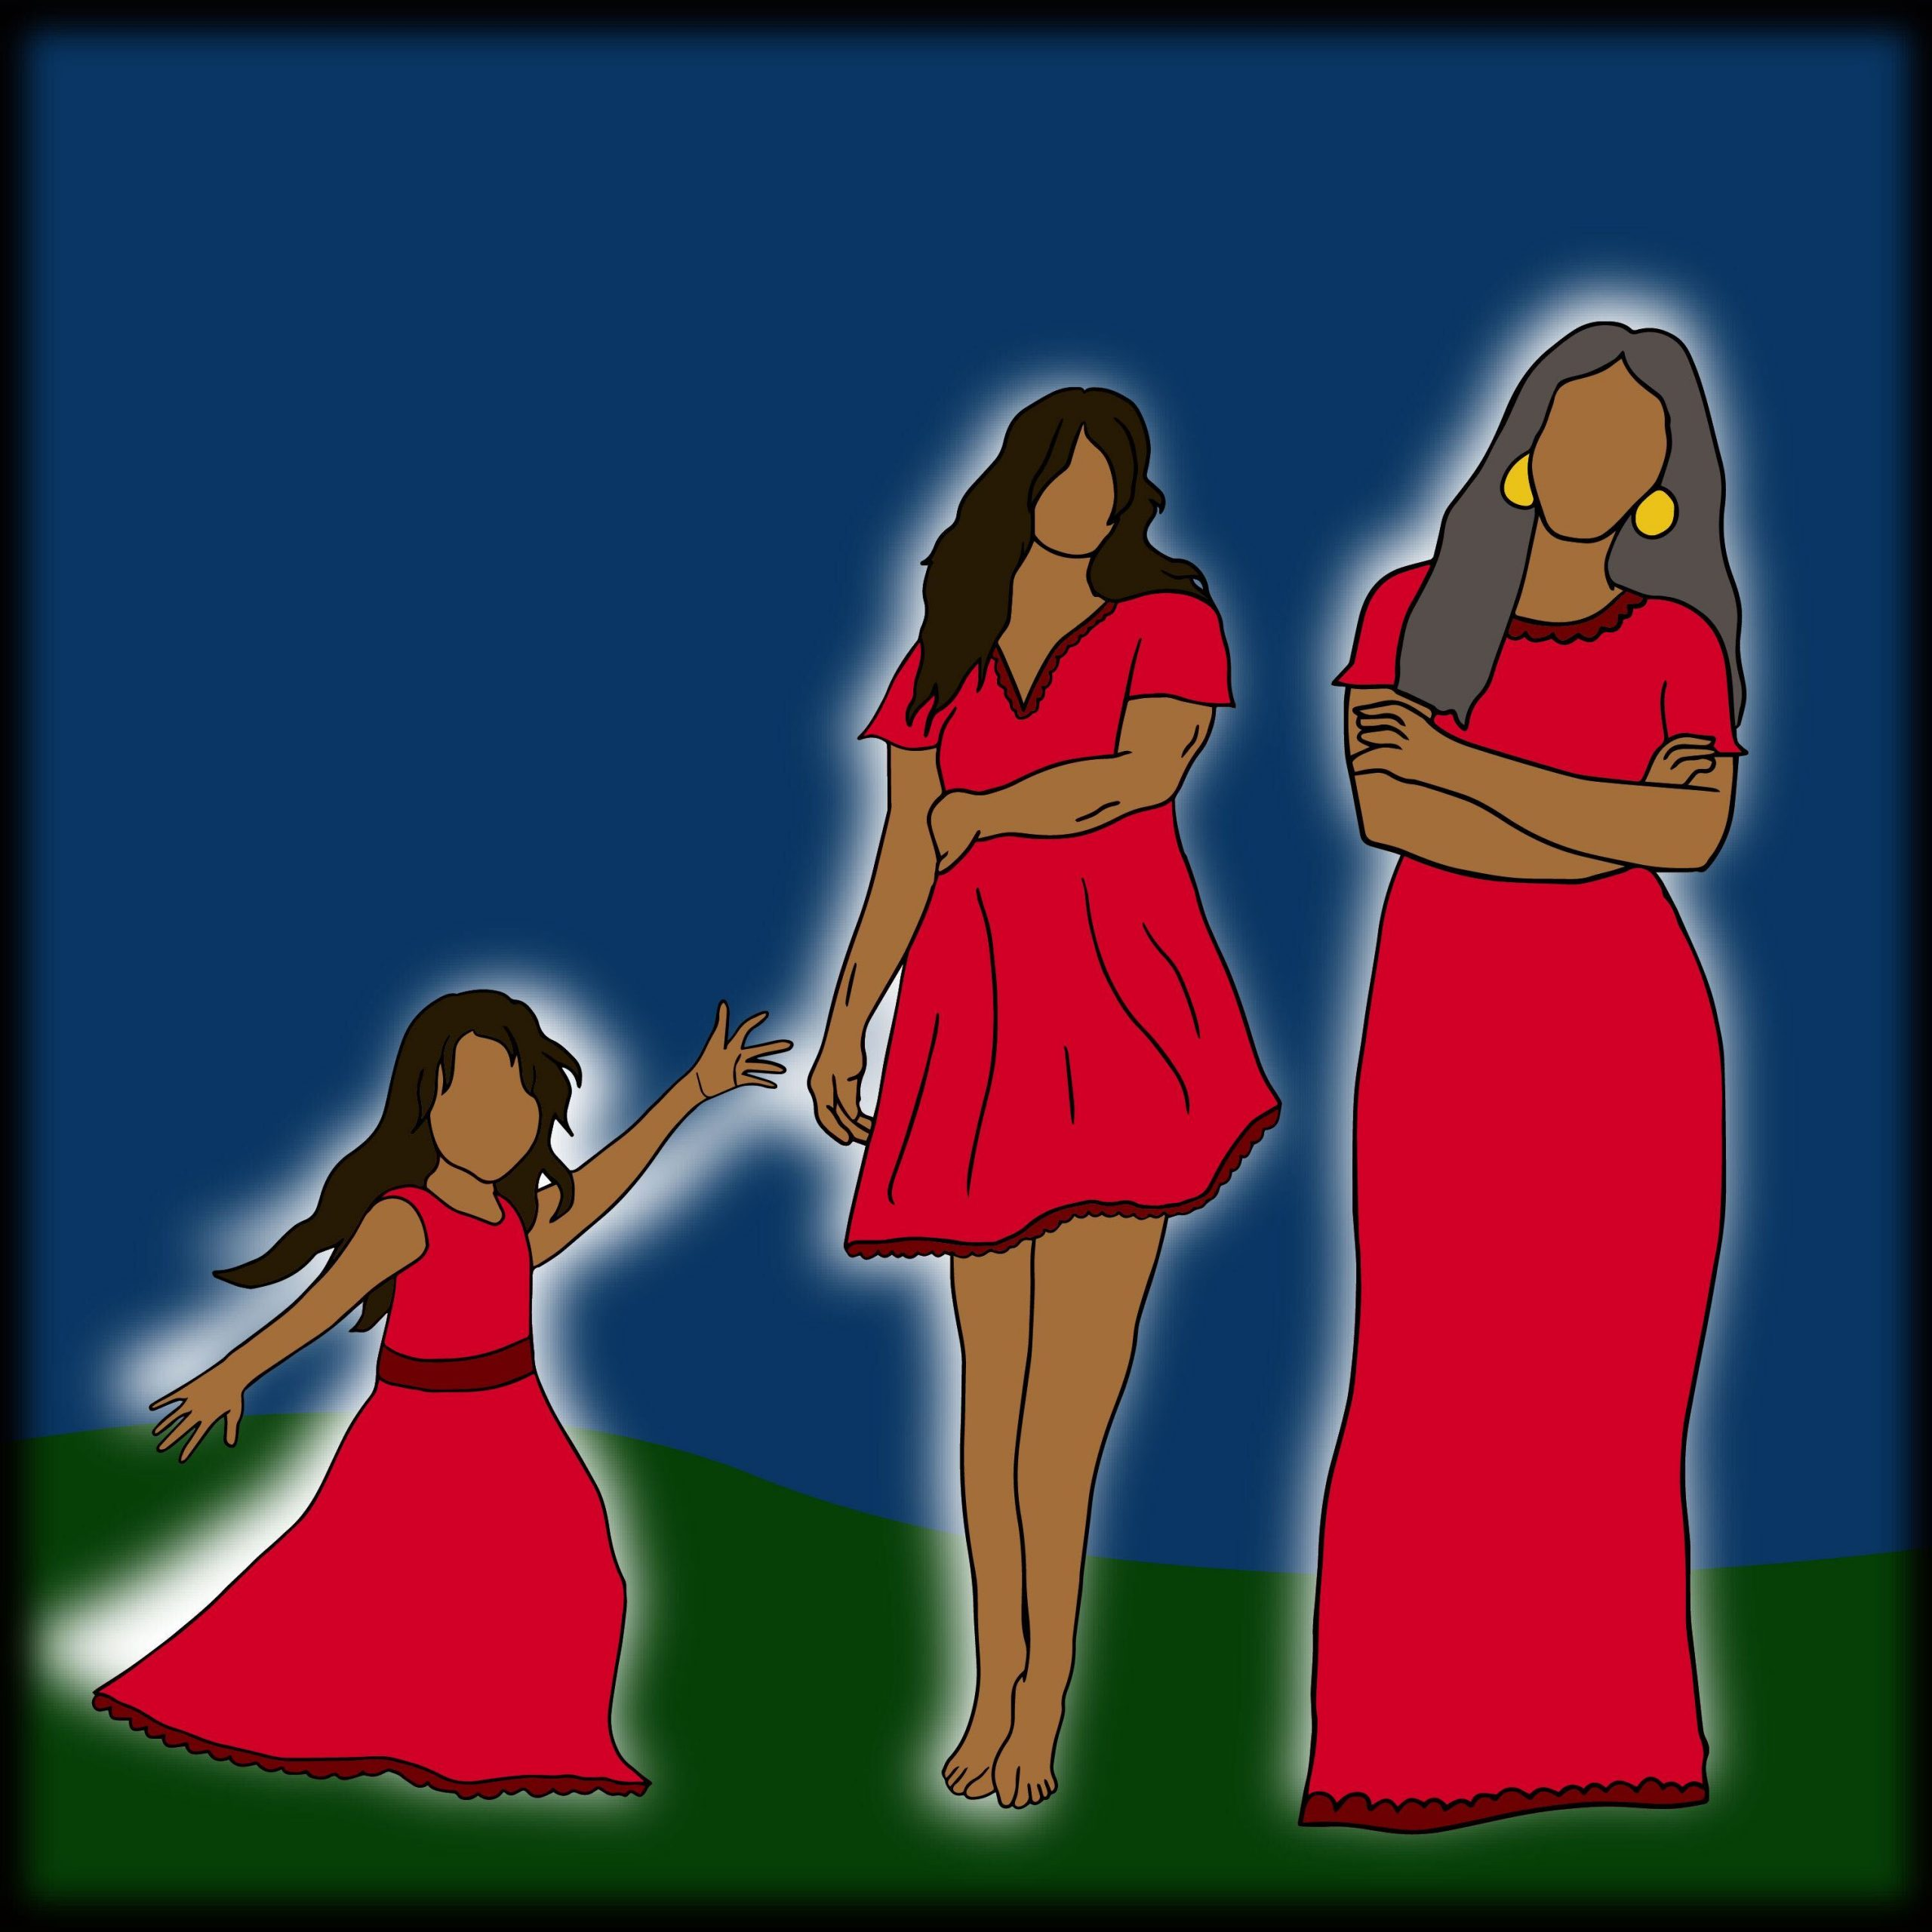 Three faceless Indigenous women in red dresses. A child dances joyfully, an adult is guarded, and an elder is concerned.